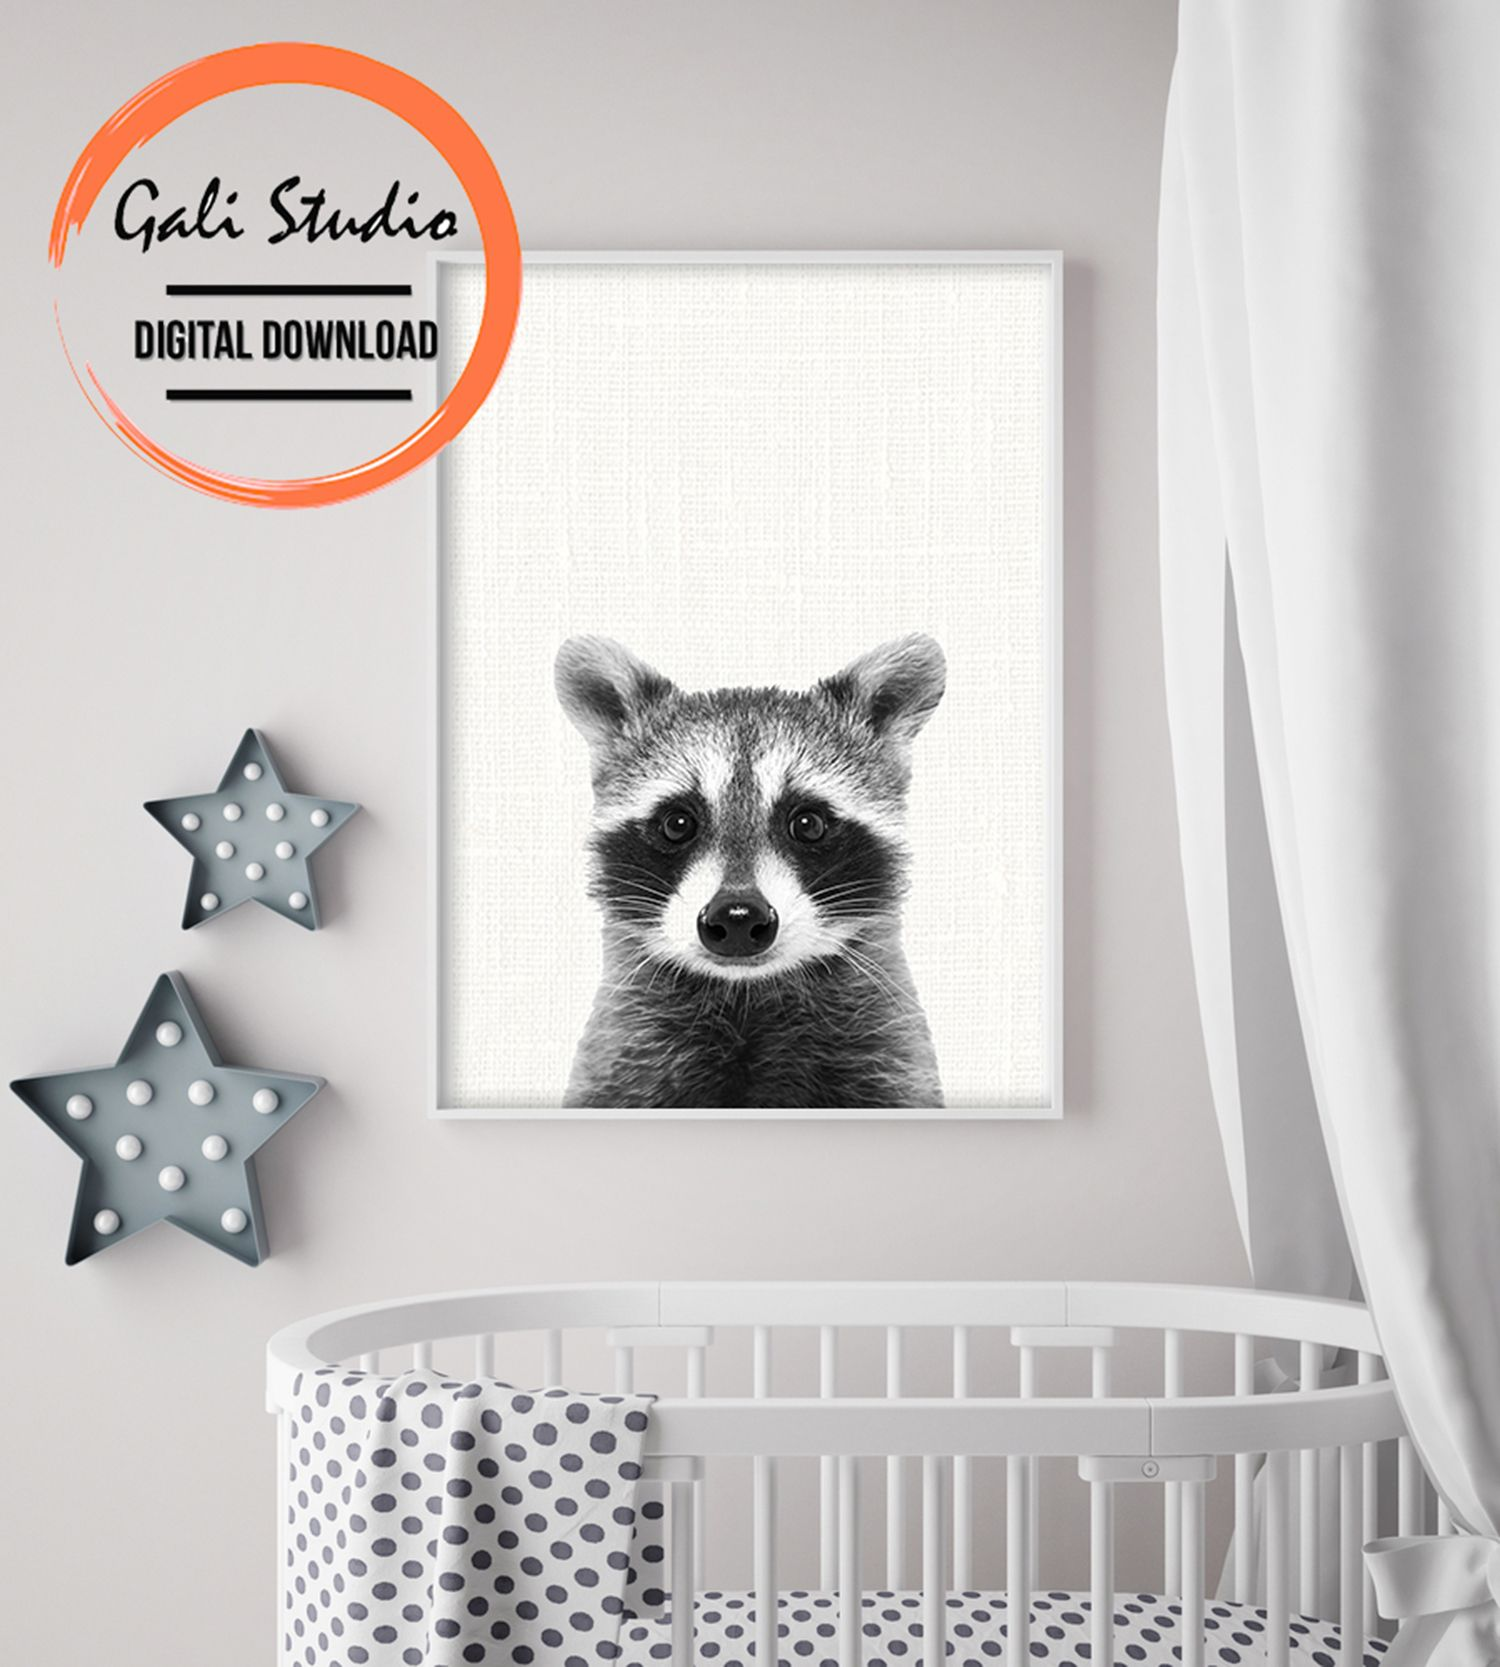 Raccoon Baby Printable Poster For Digital Download